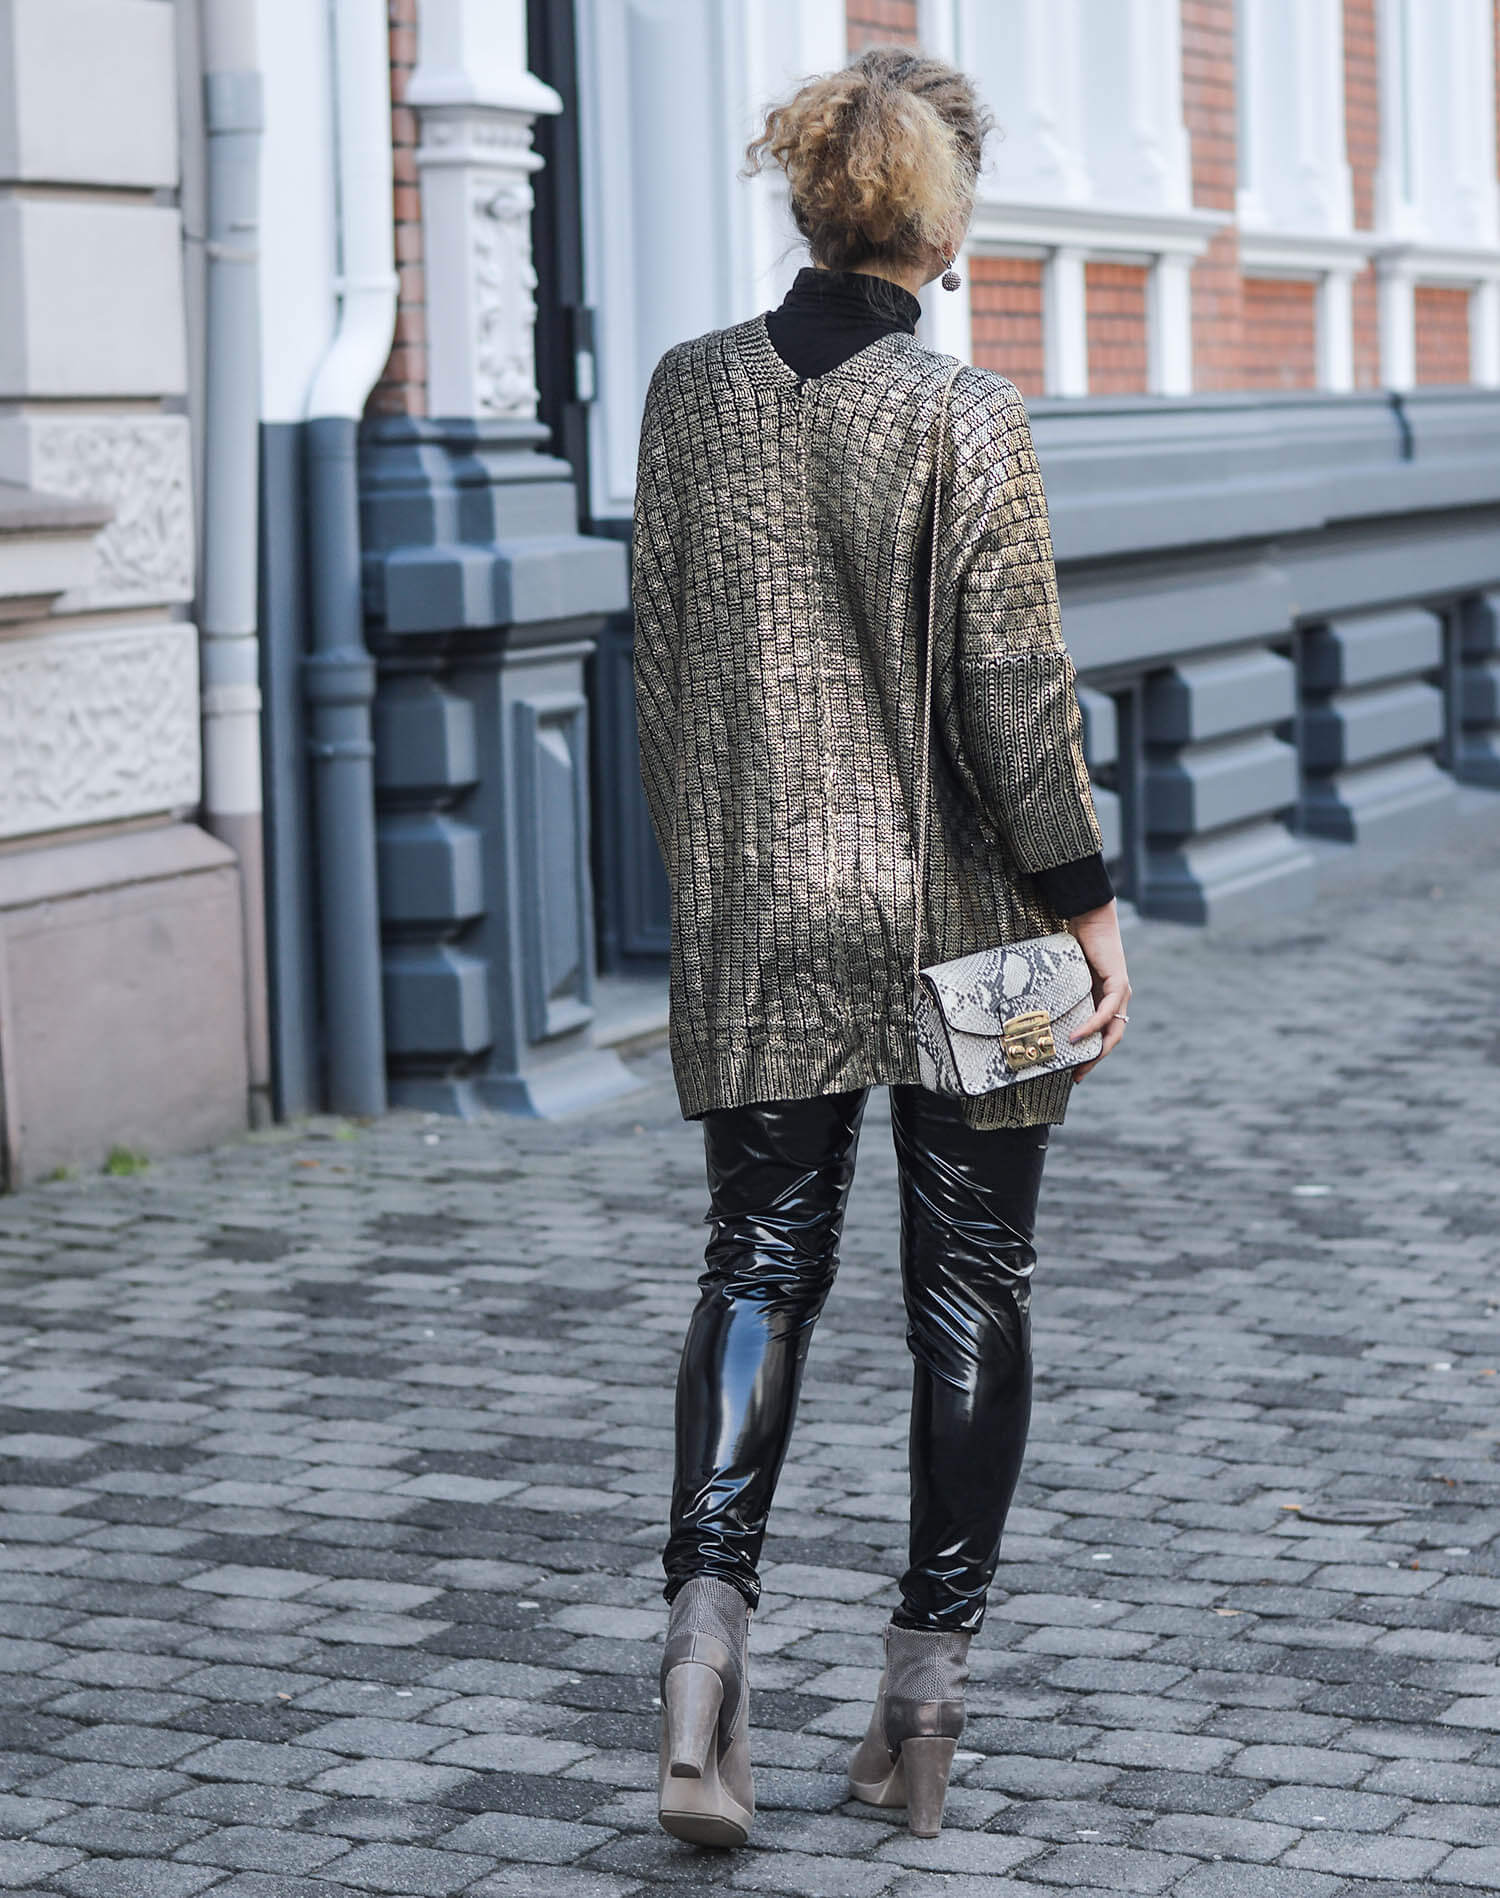 Kationette-fashionblogger-outfit-Outfit-Black-and-Gold-Golden-Knit-and-Vinylpants-streetstyle